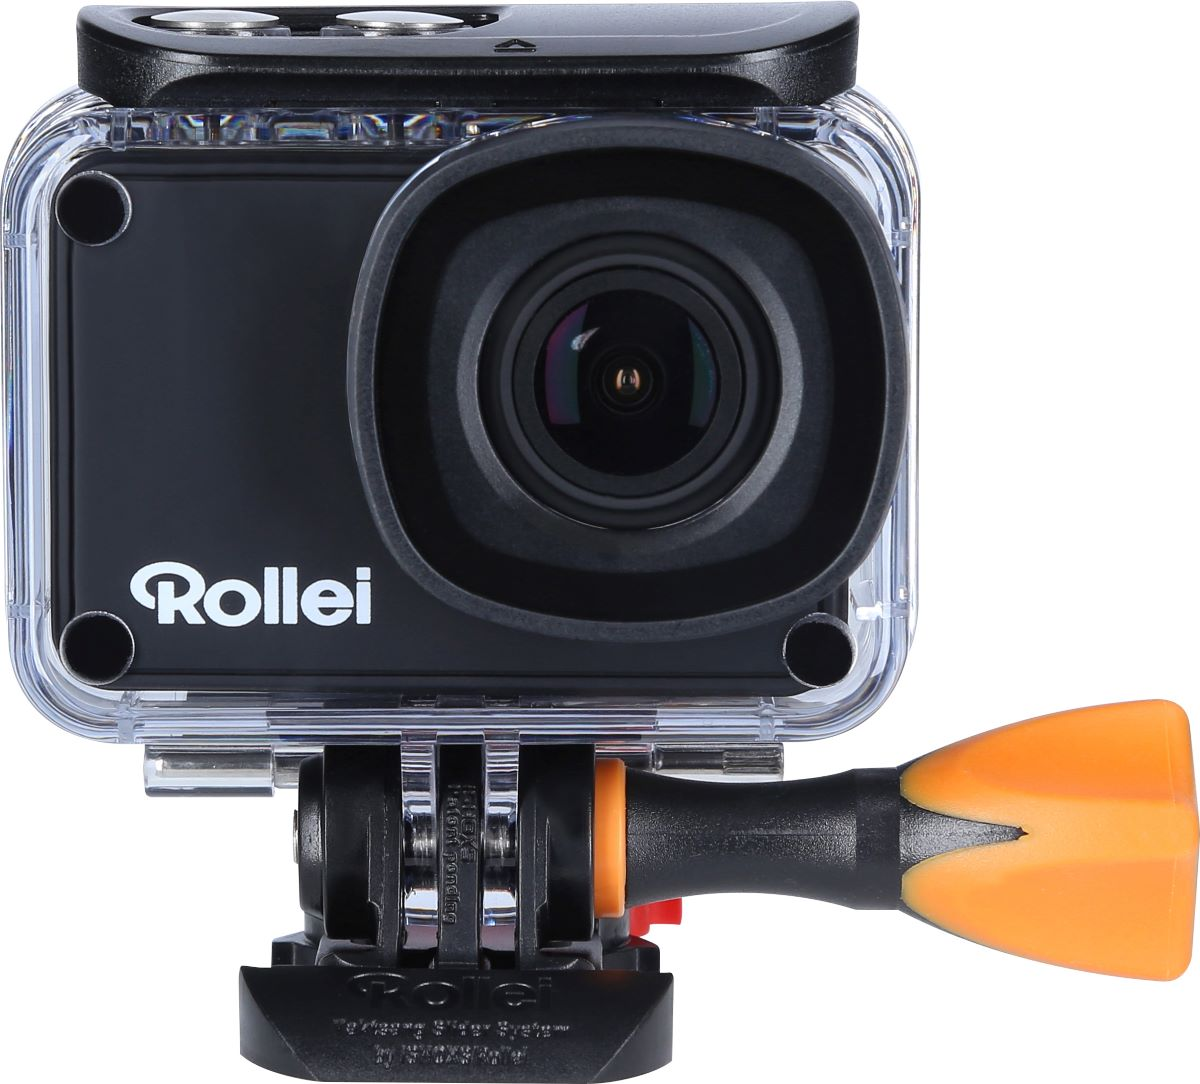 Rollei Actioncam Frontal